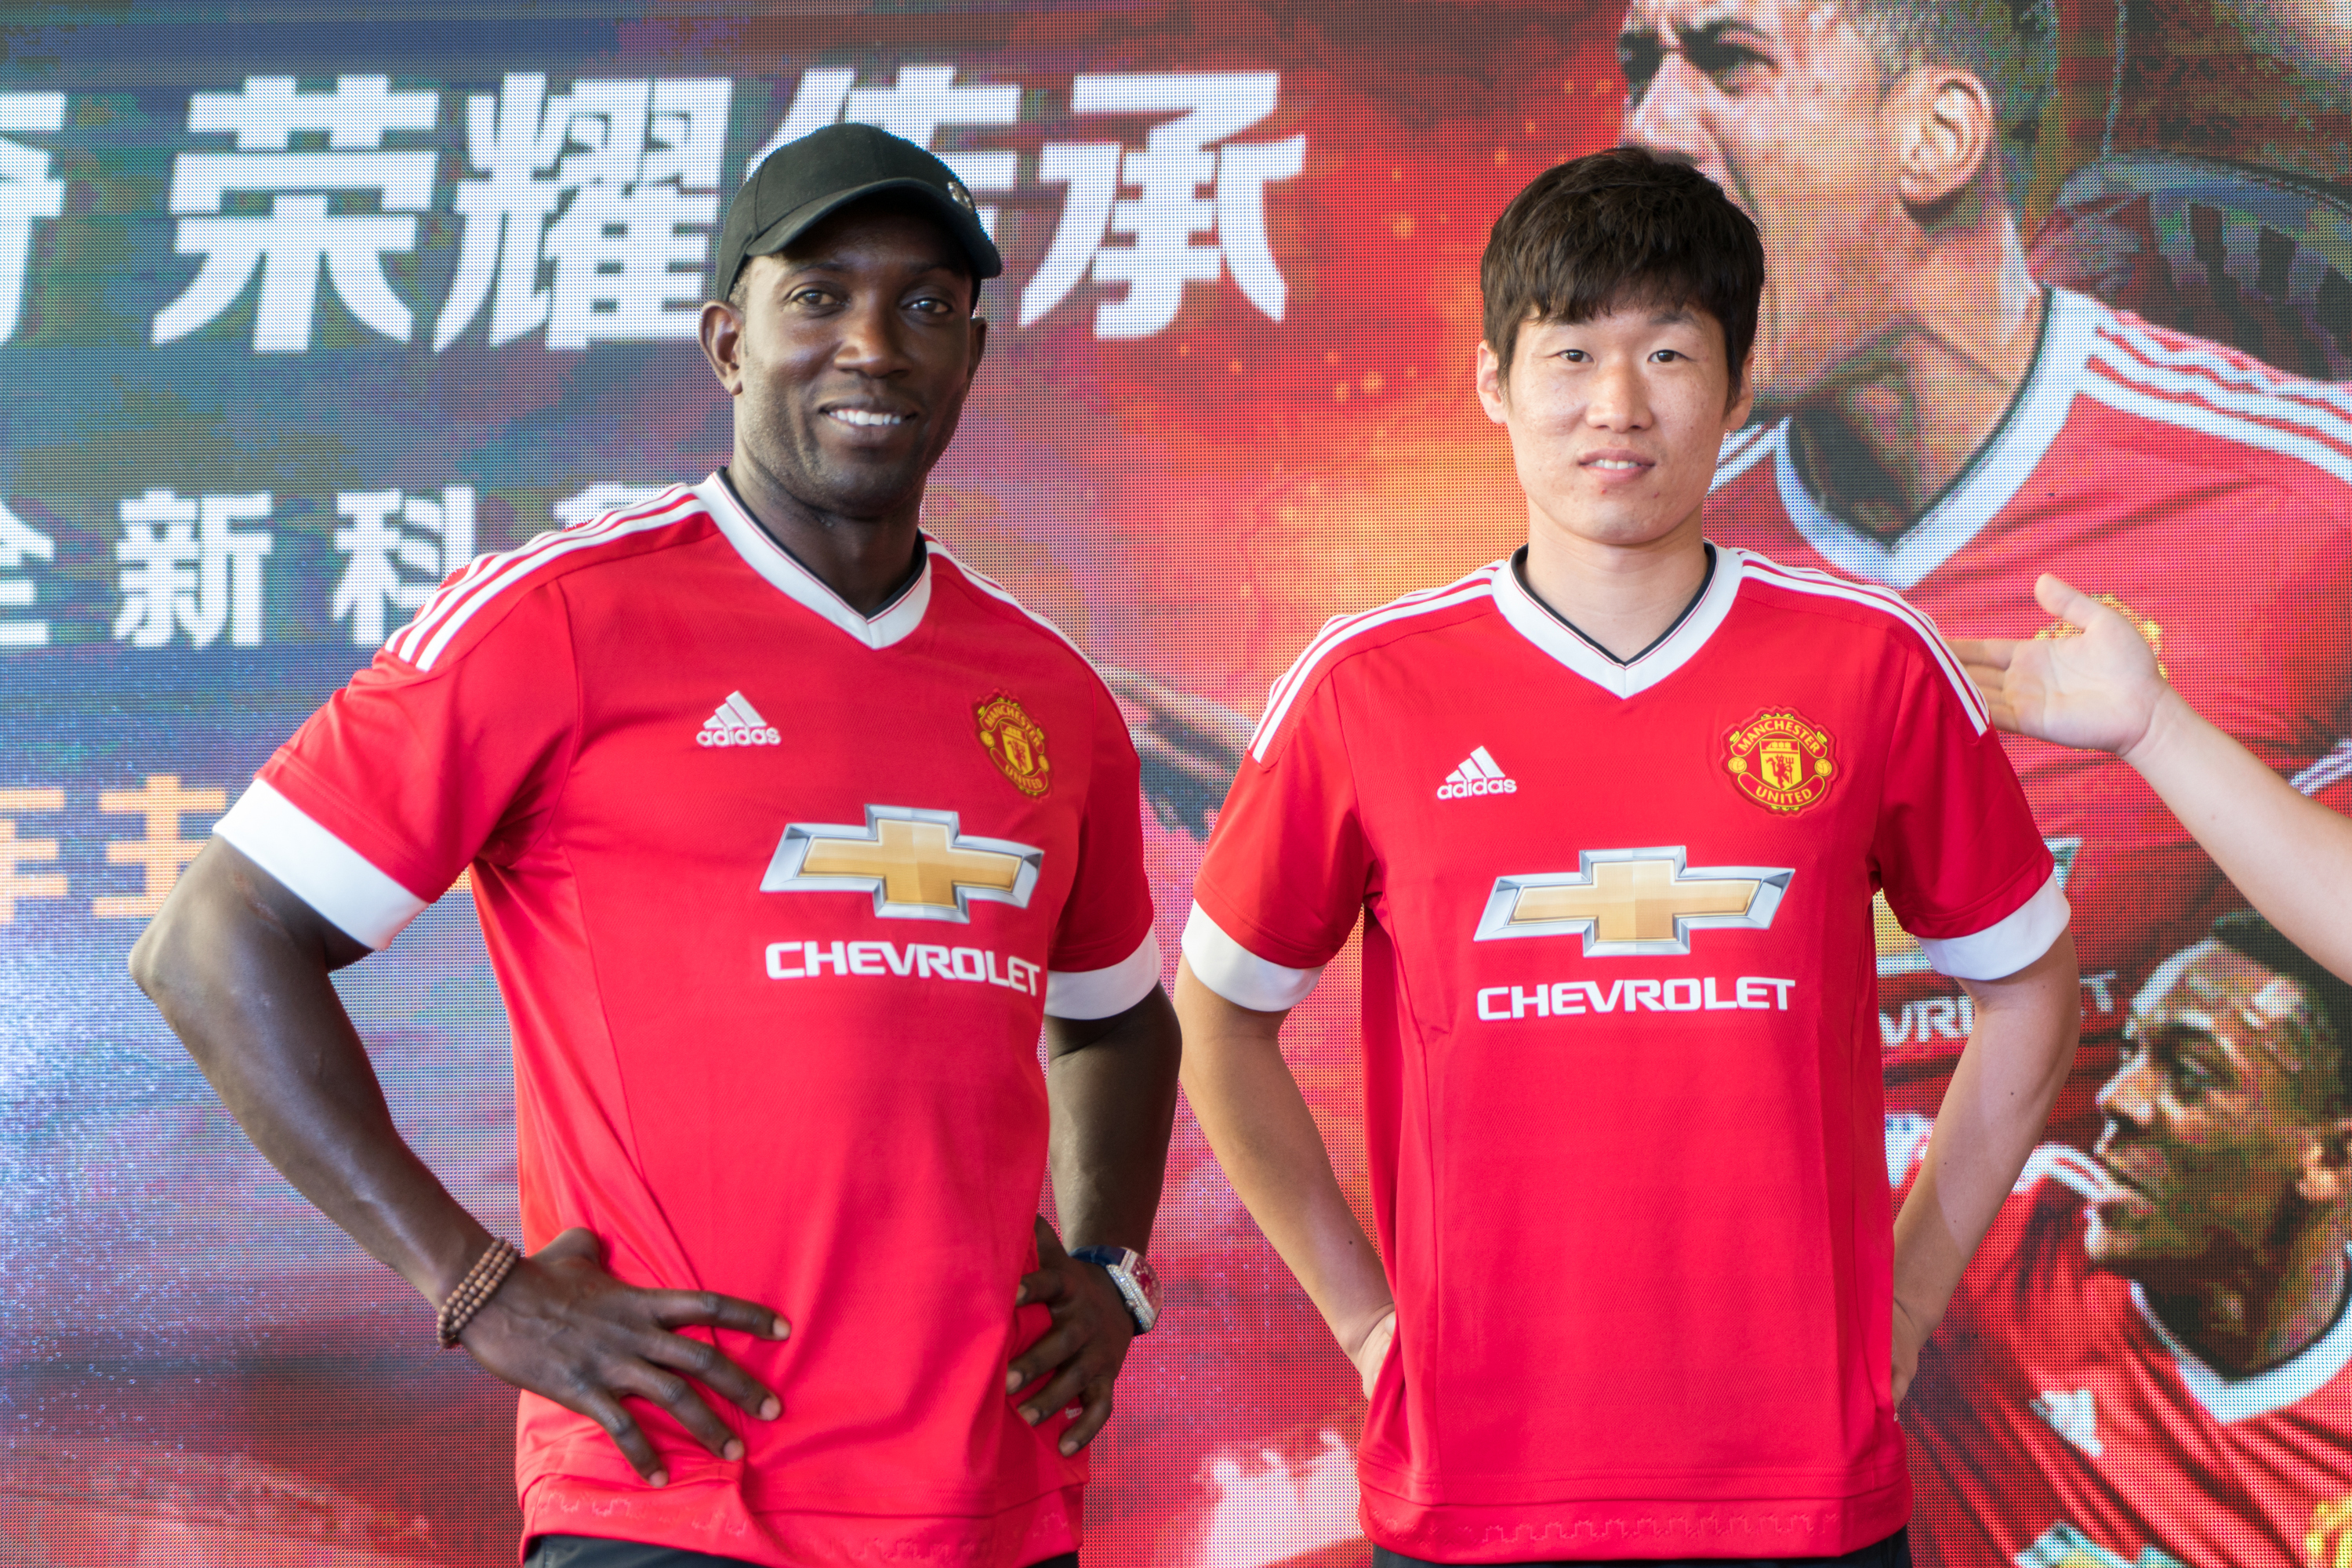 Dwight Yorke And Park Ji-Sung Attend Chevrolet Activity In Shanghai